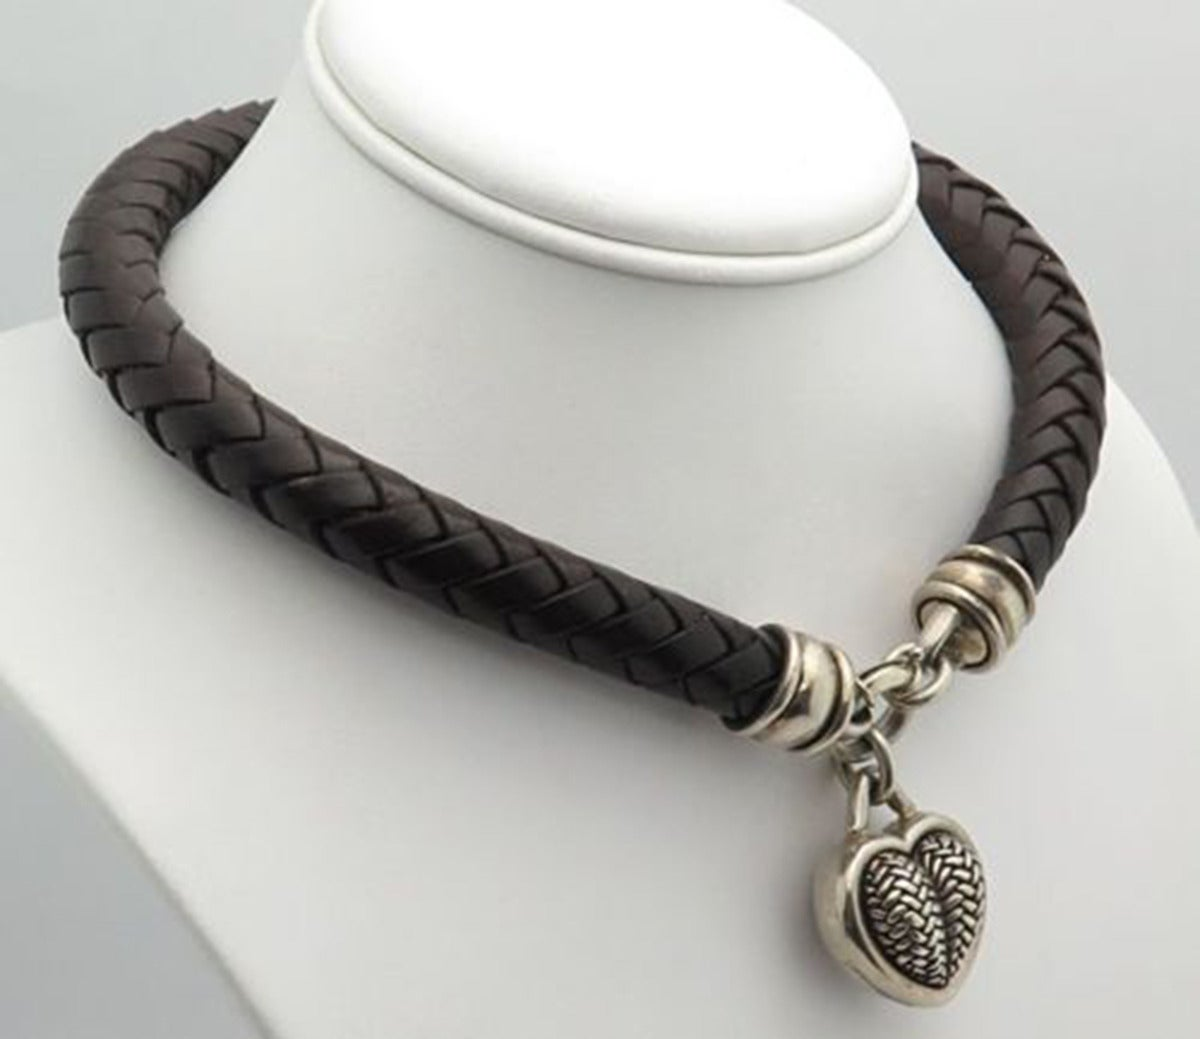 Barry Kieselstein Cord BKC Sterling Silver Heart Braided Leather Necklace 2